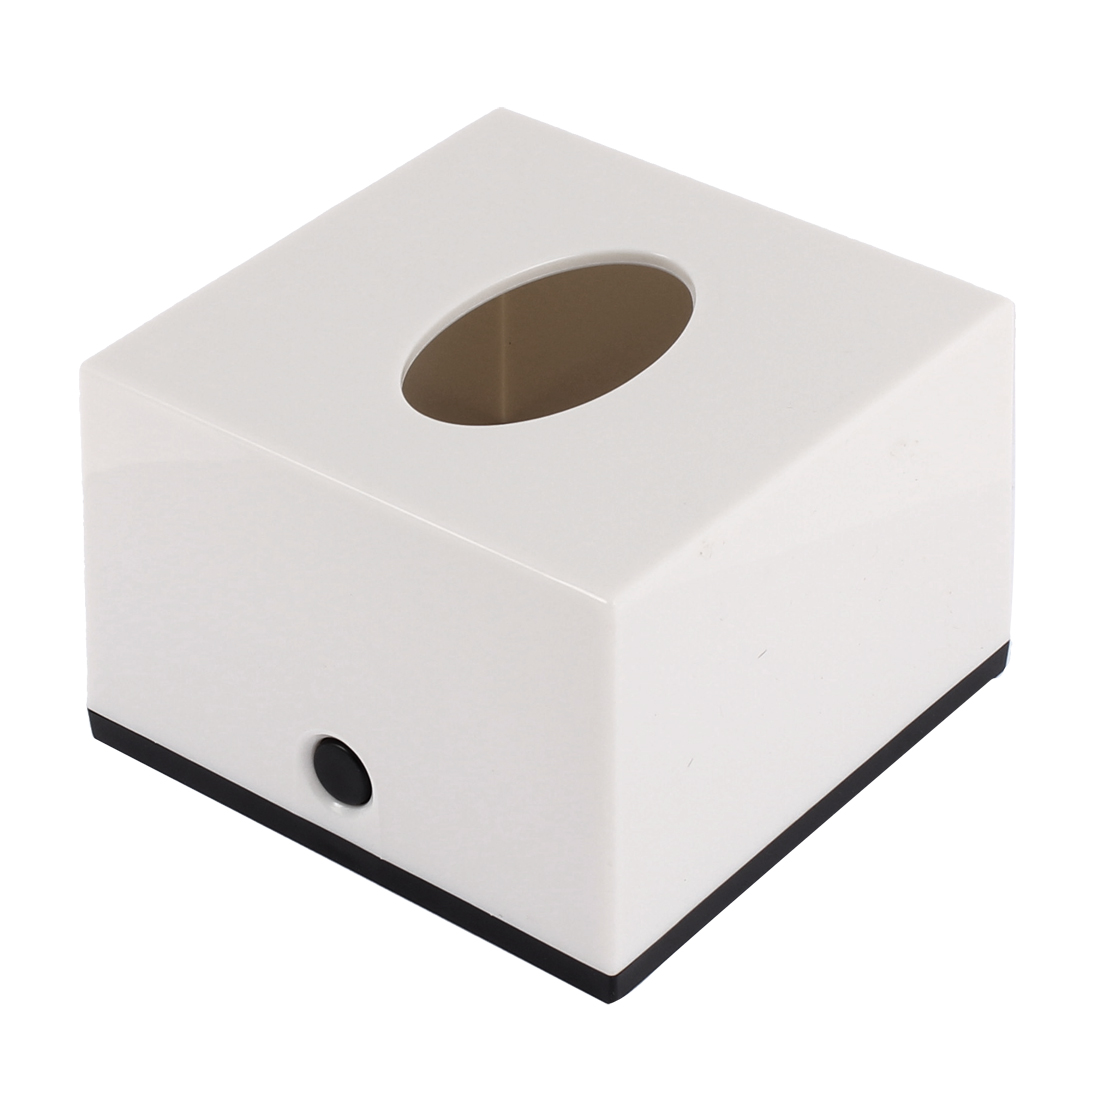 Home Hotel Bar Plastic Cube Paper Tissue Box Holder Container White